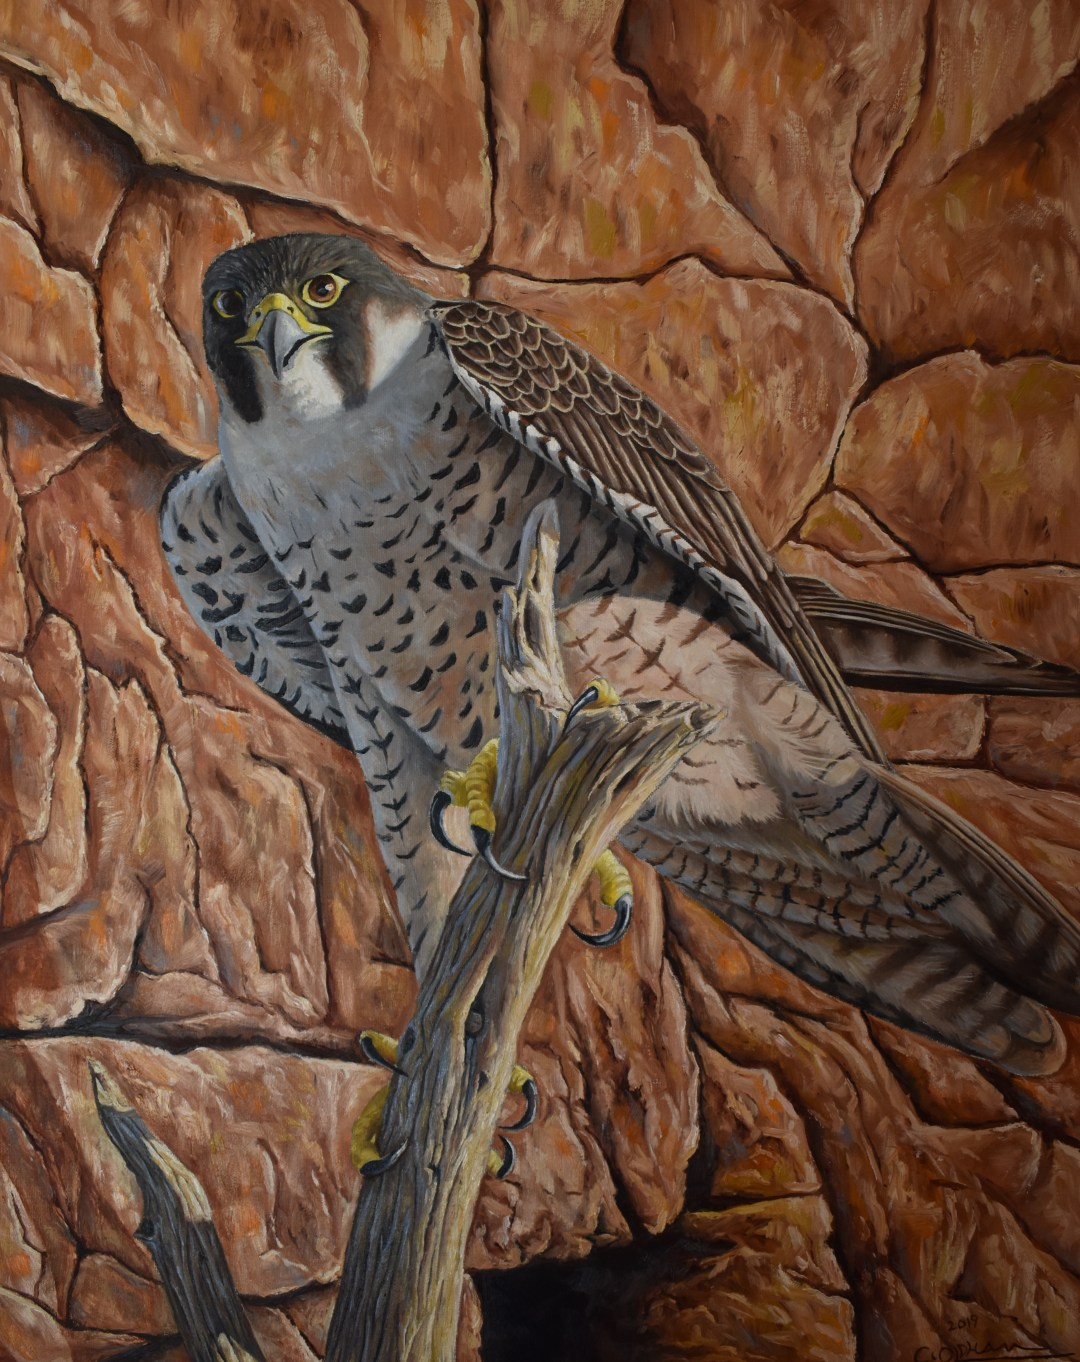 Oil painting of peregrine falcon by Cody Oldham